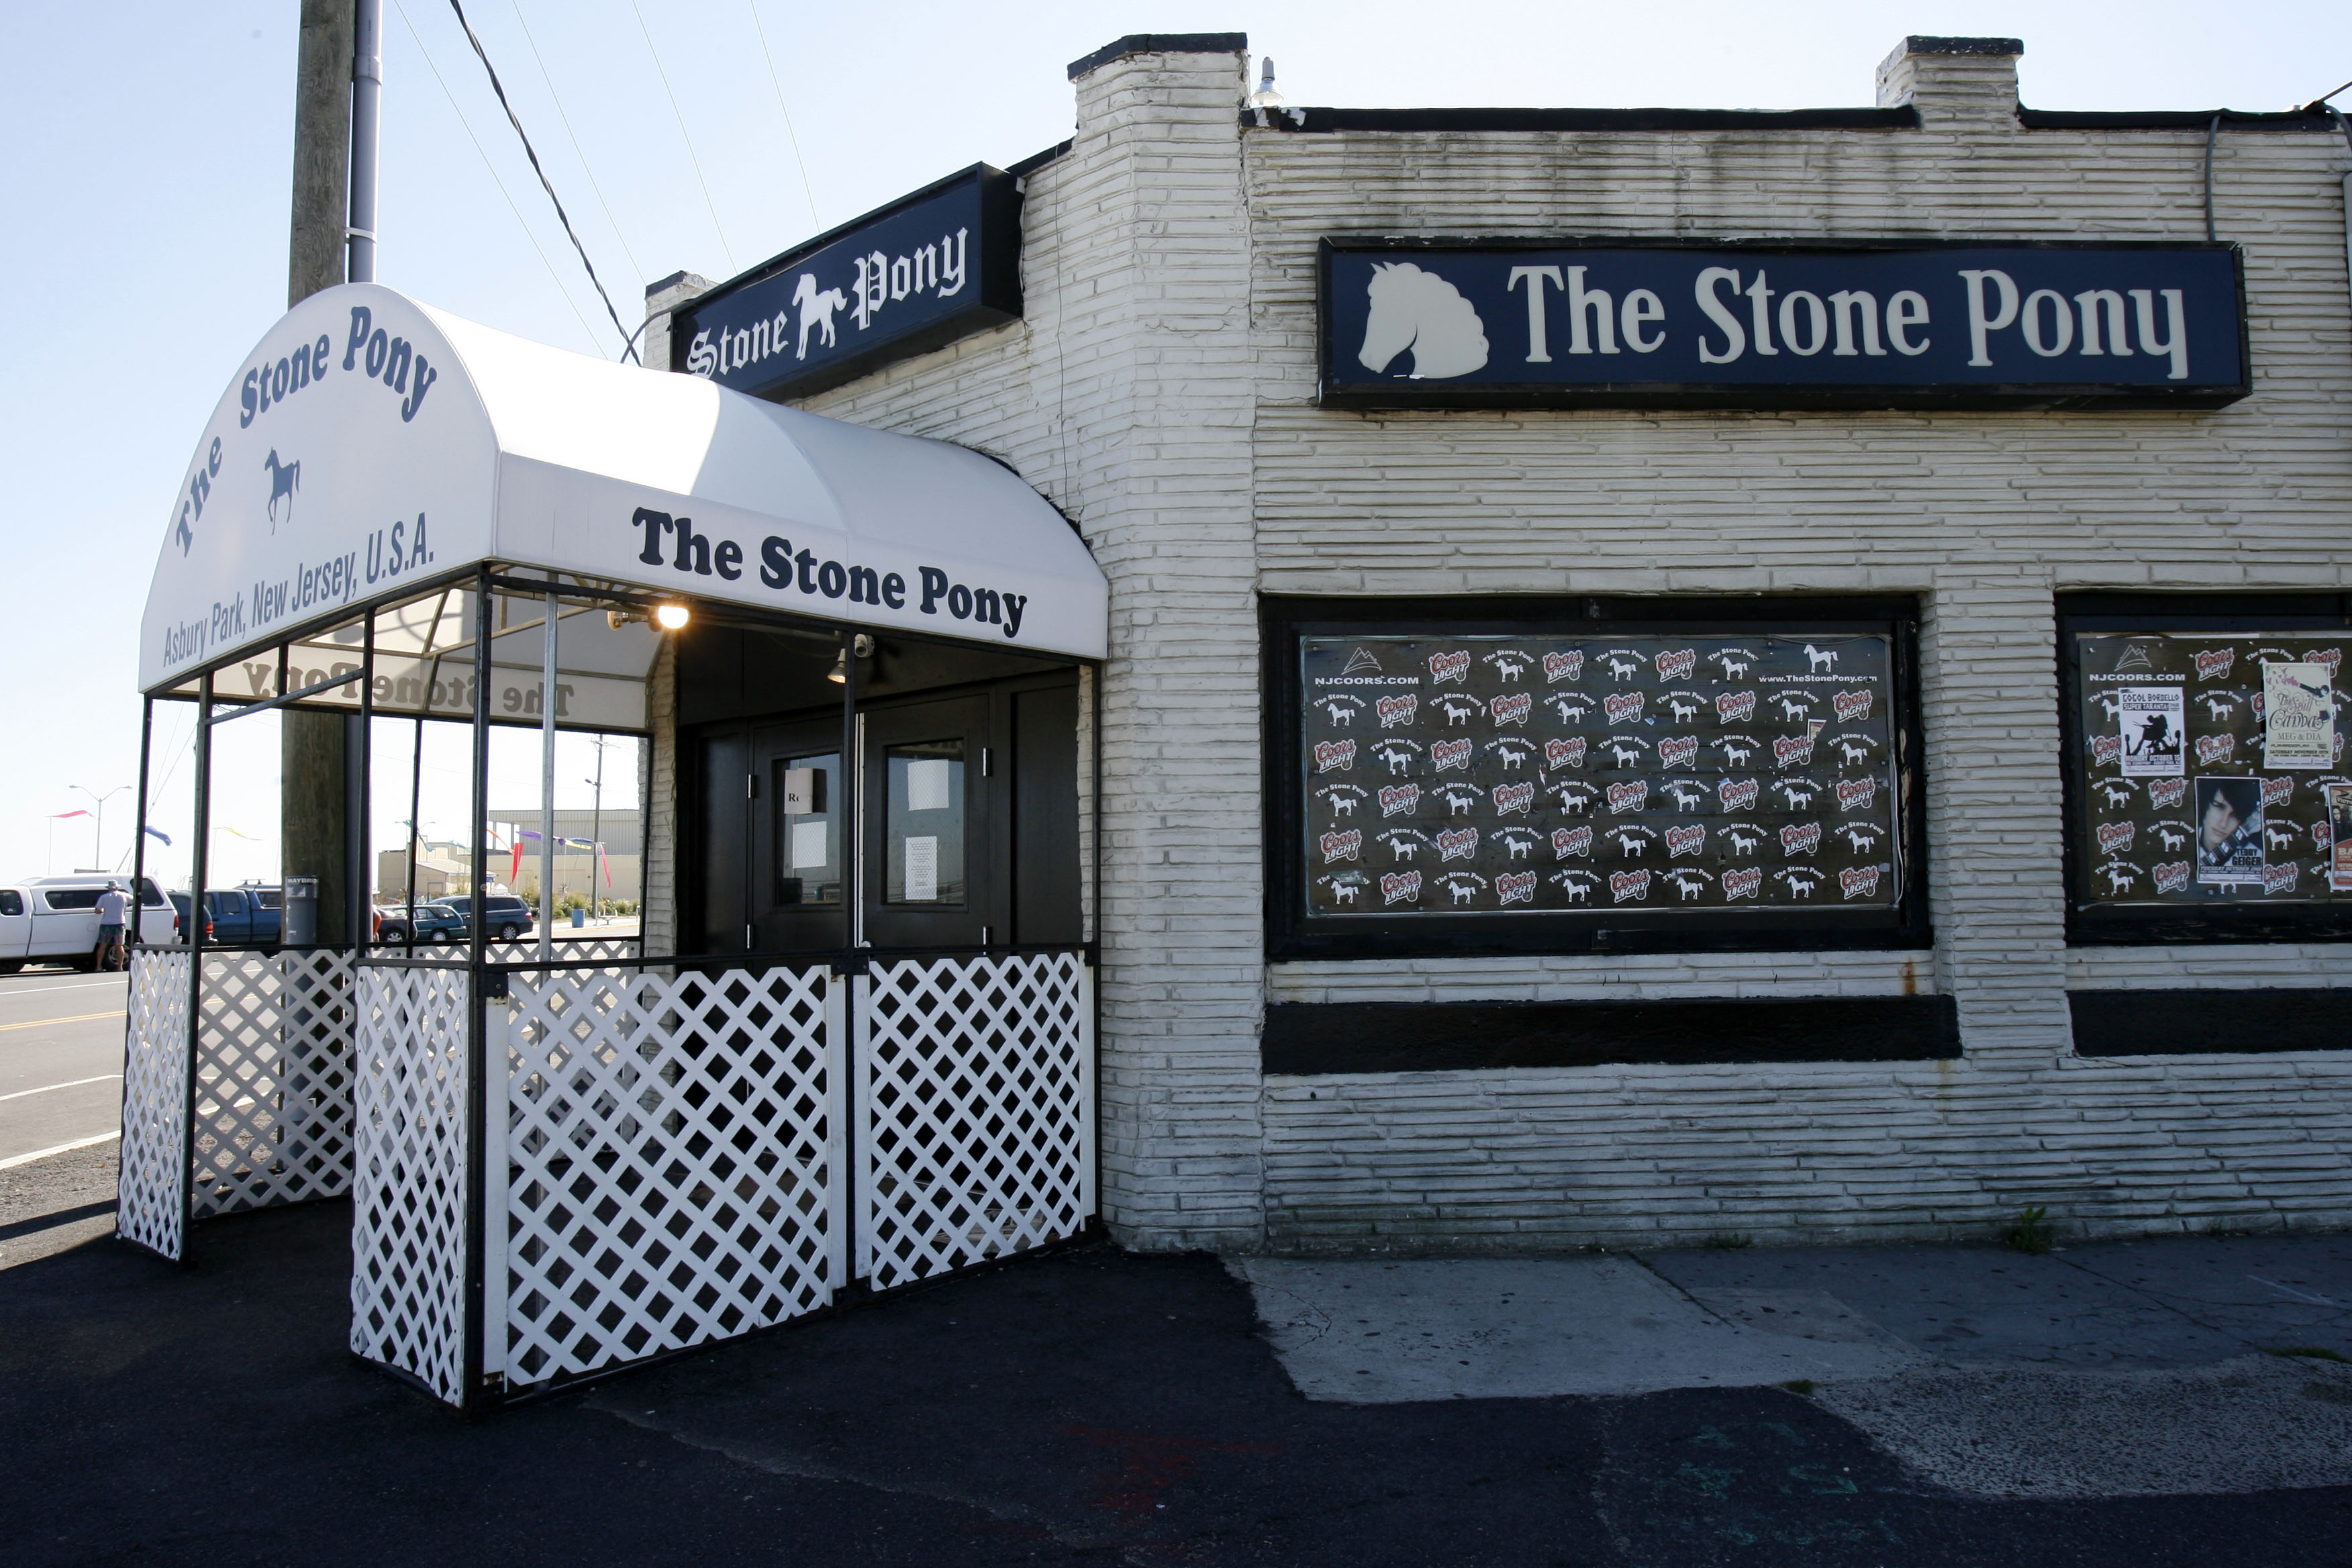 20070919NKM 6/x Exterior photo of the Stone Pony. The building is on the list of the best 150 bldgs according to NJ architects . Ocean Grove, NJ 9/19/07 2:25:39 PM NOAH K. MURRAY/THE STAR-LEDGER